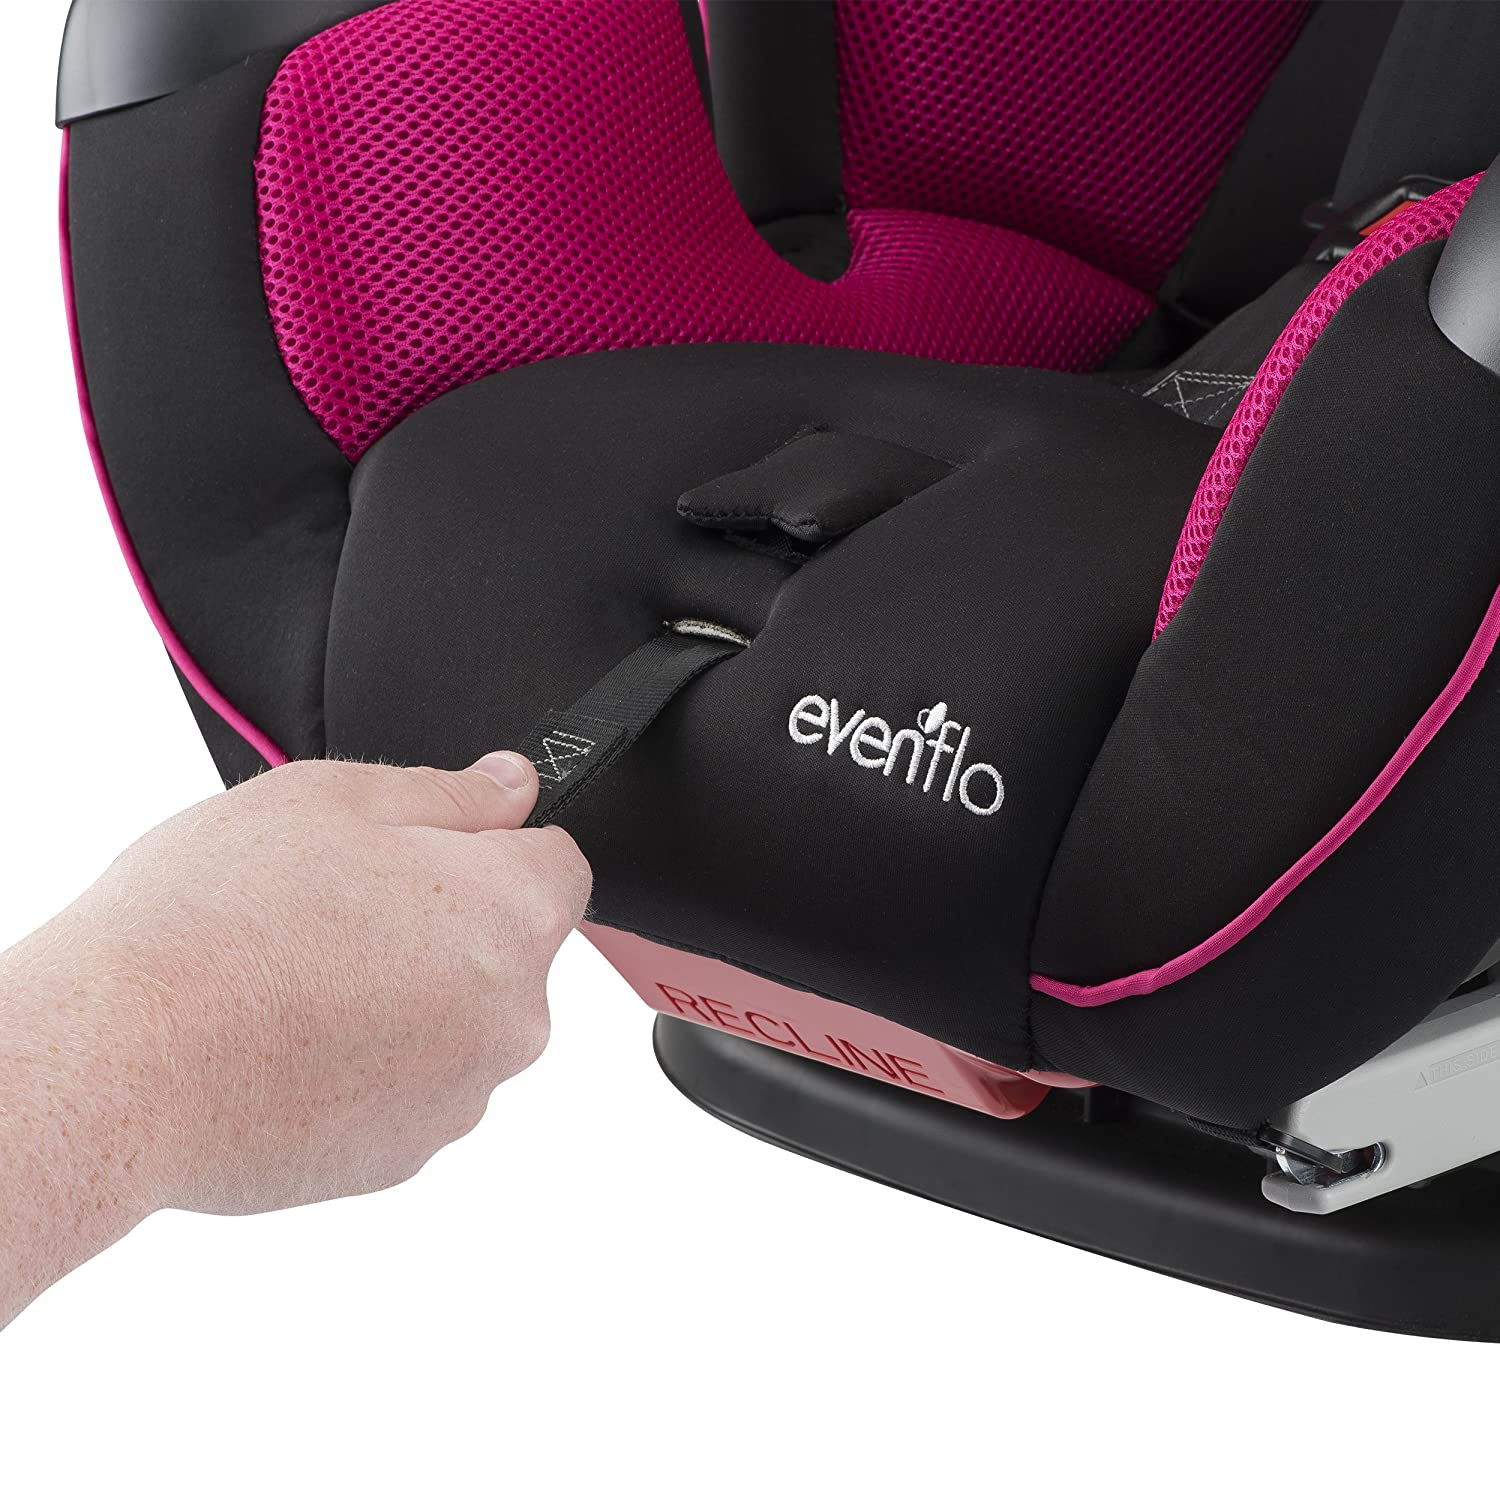 Evenflo Symphony Elite All-in-One Convertible Car Seat Raspberry Sorbet